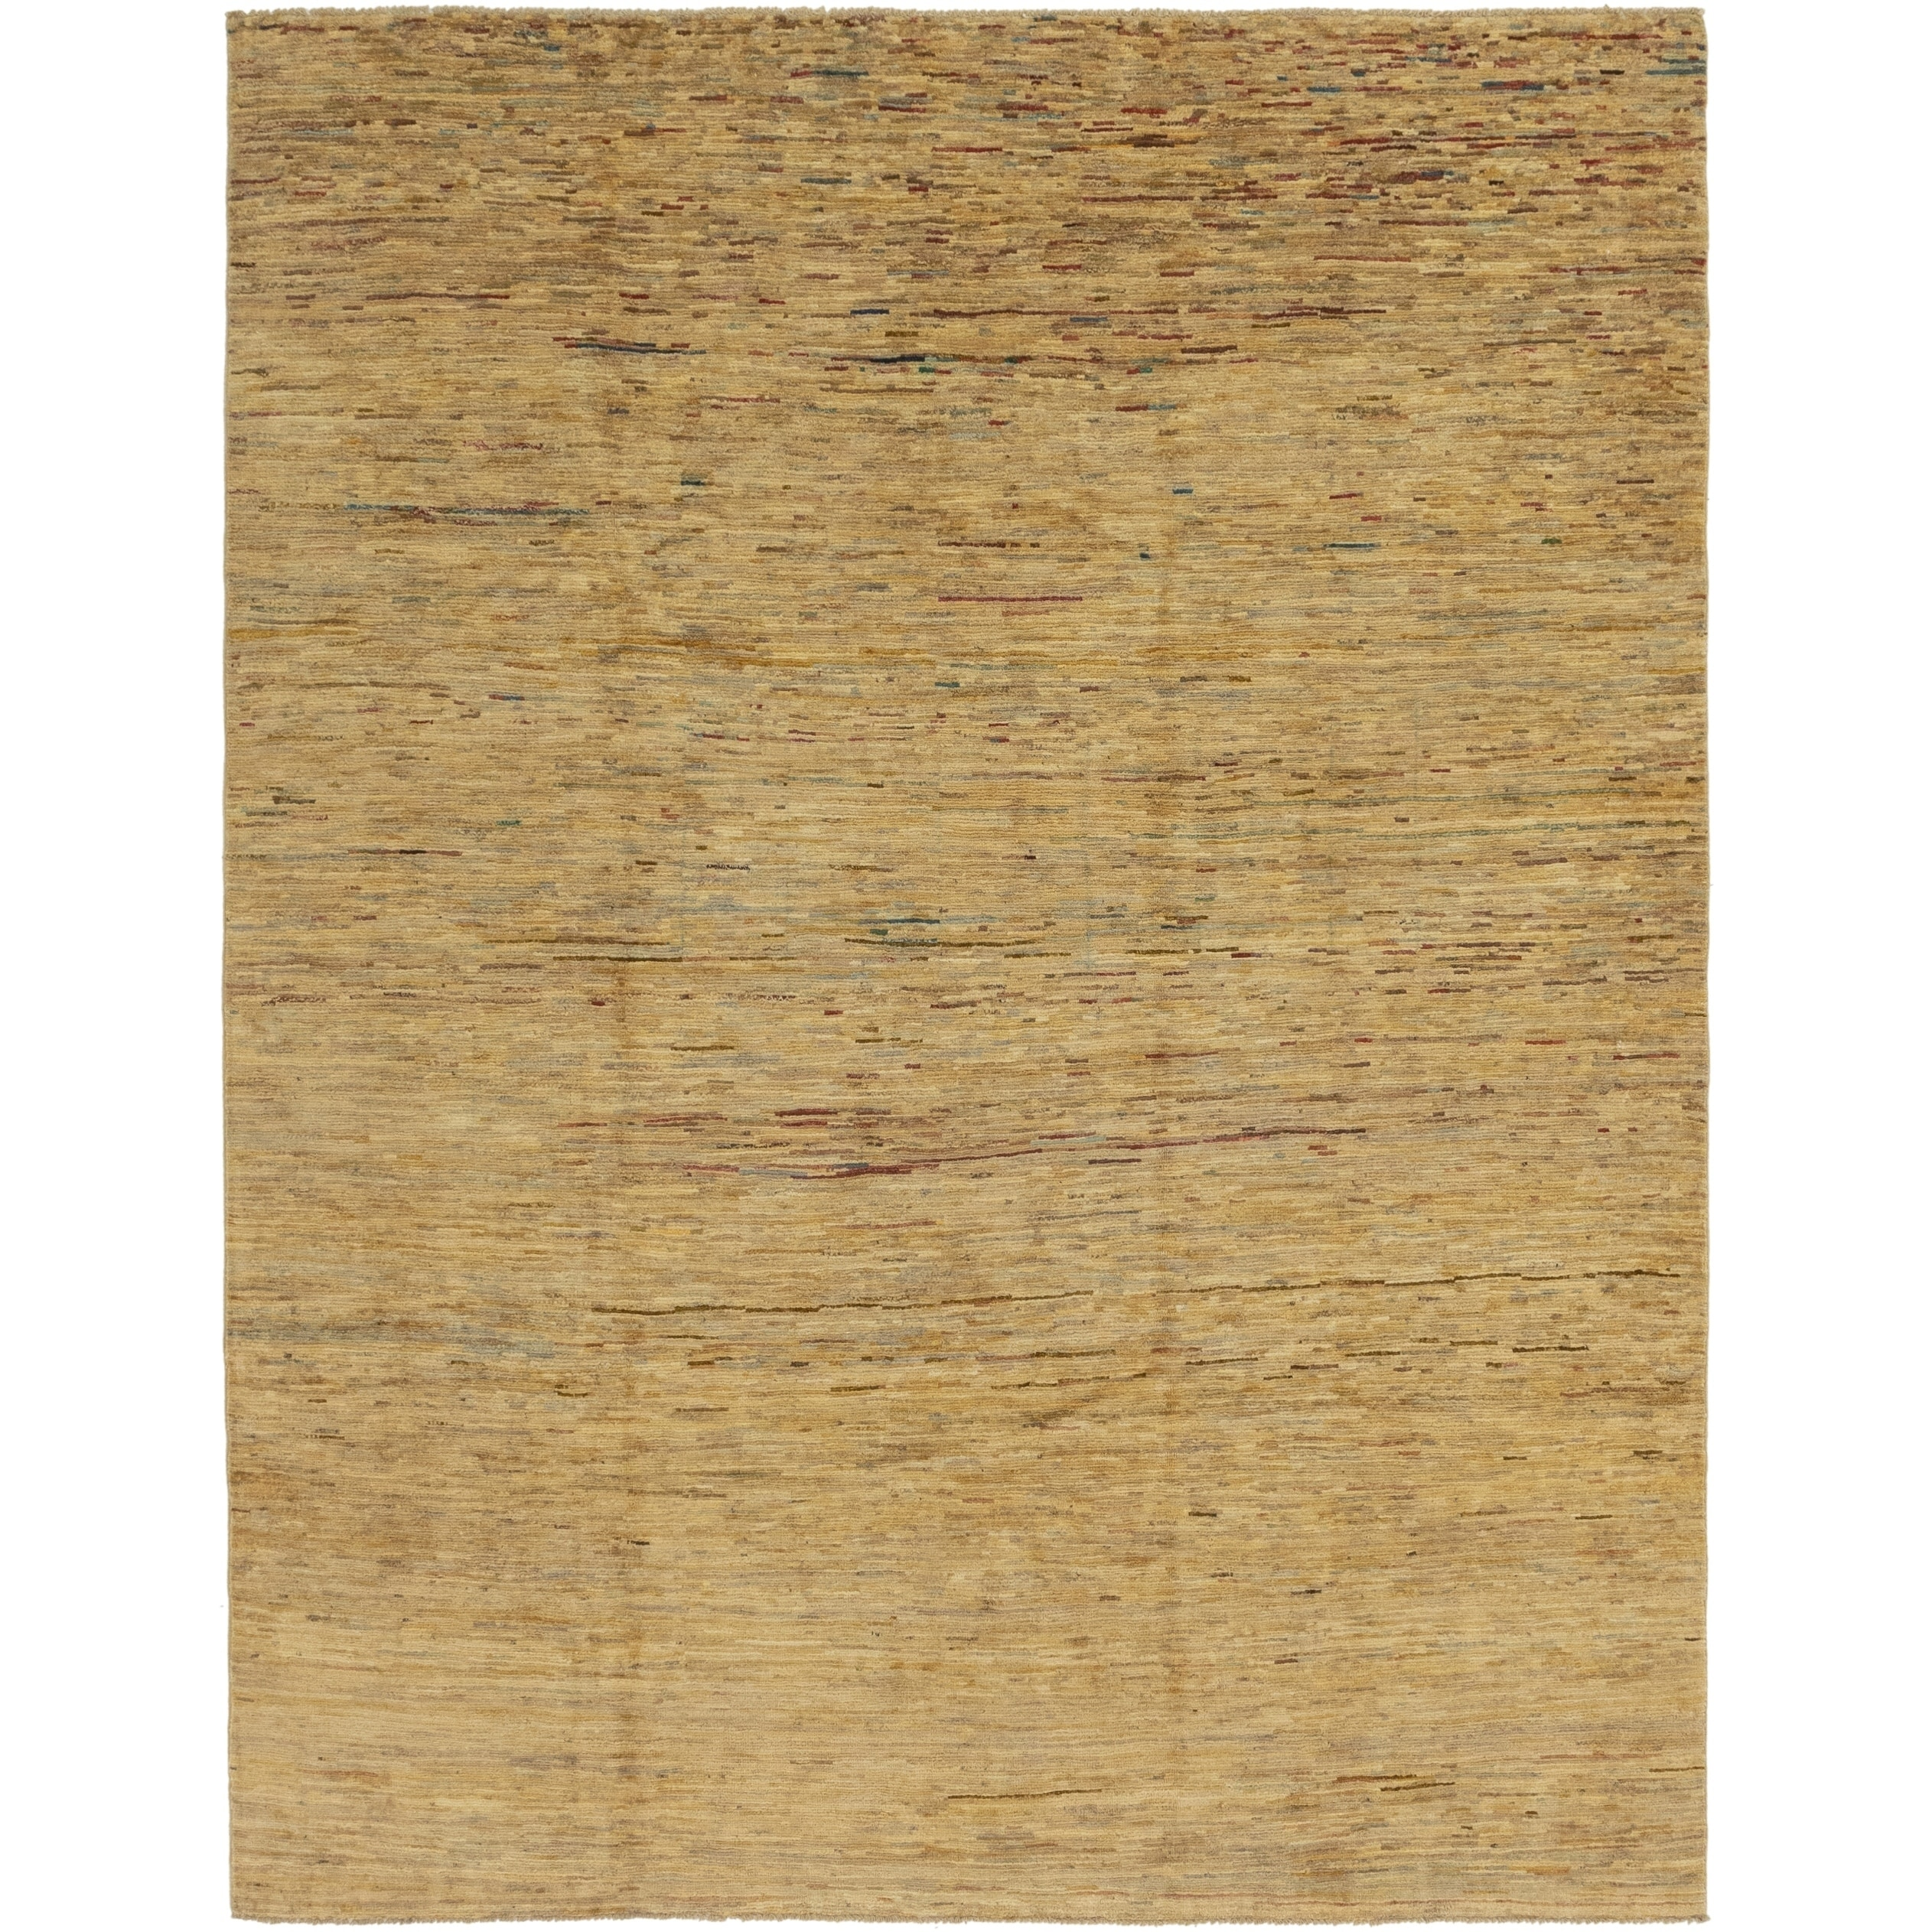 Hand Knotted Kashkuli Gabbeh Wool Area Rug - 7 5 x 9 6 (Gold - 7 5 x 9 6)